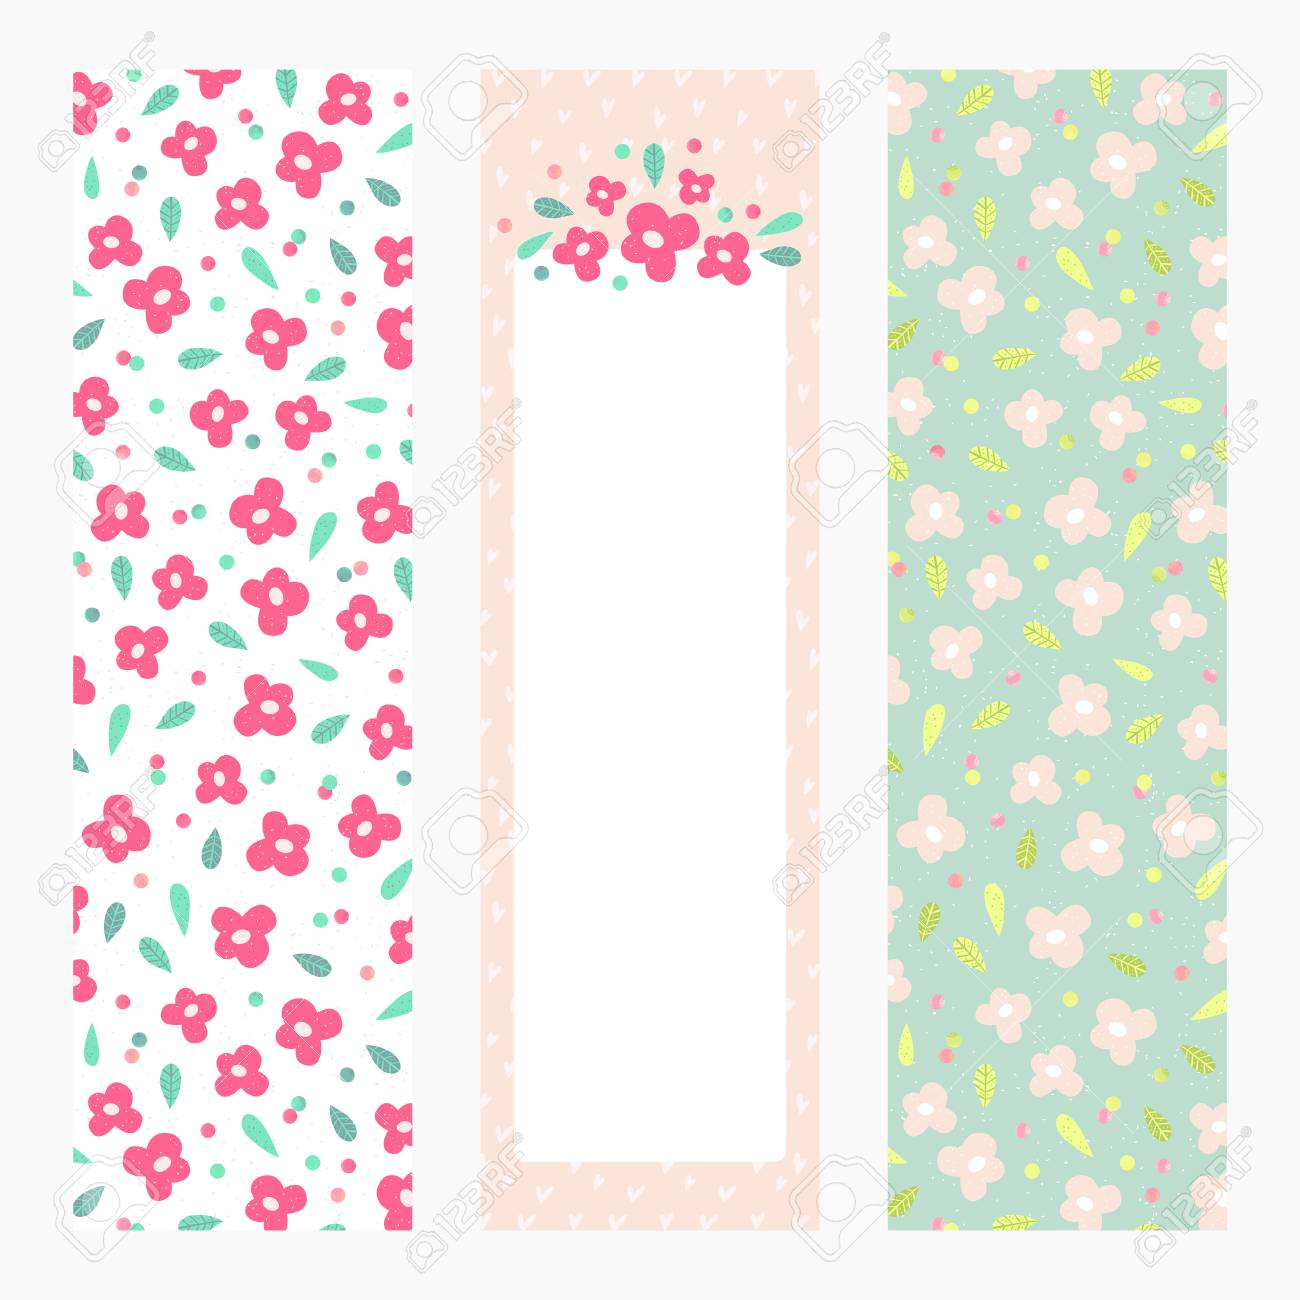 graphic regarding Bookmarks Printable identified as Printable bookmarks or banners with small bouquets upon pastel..